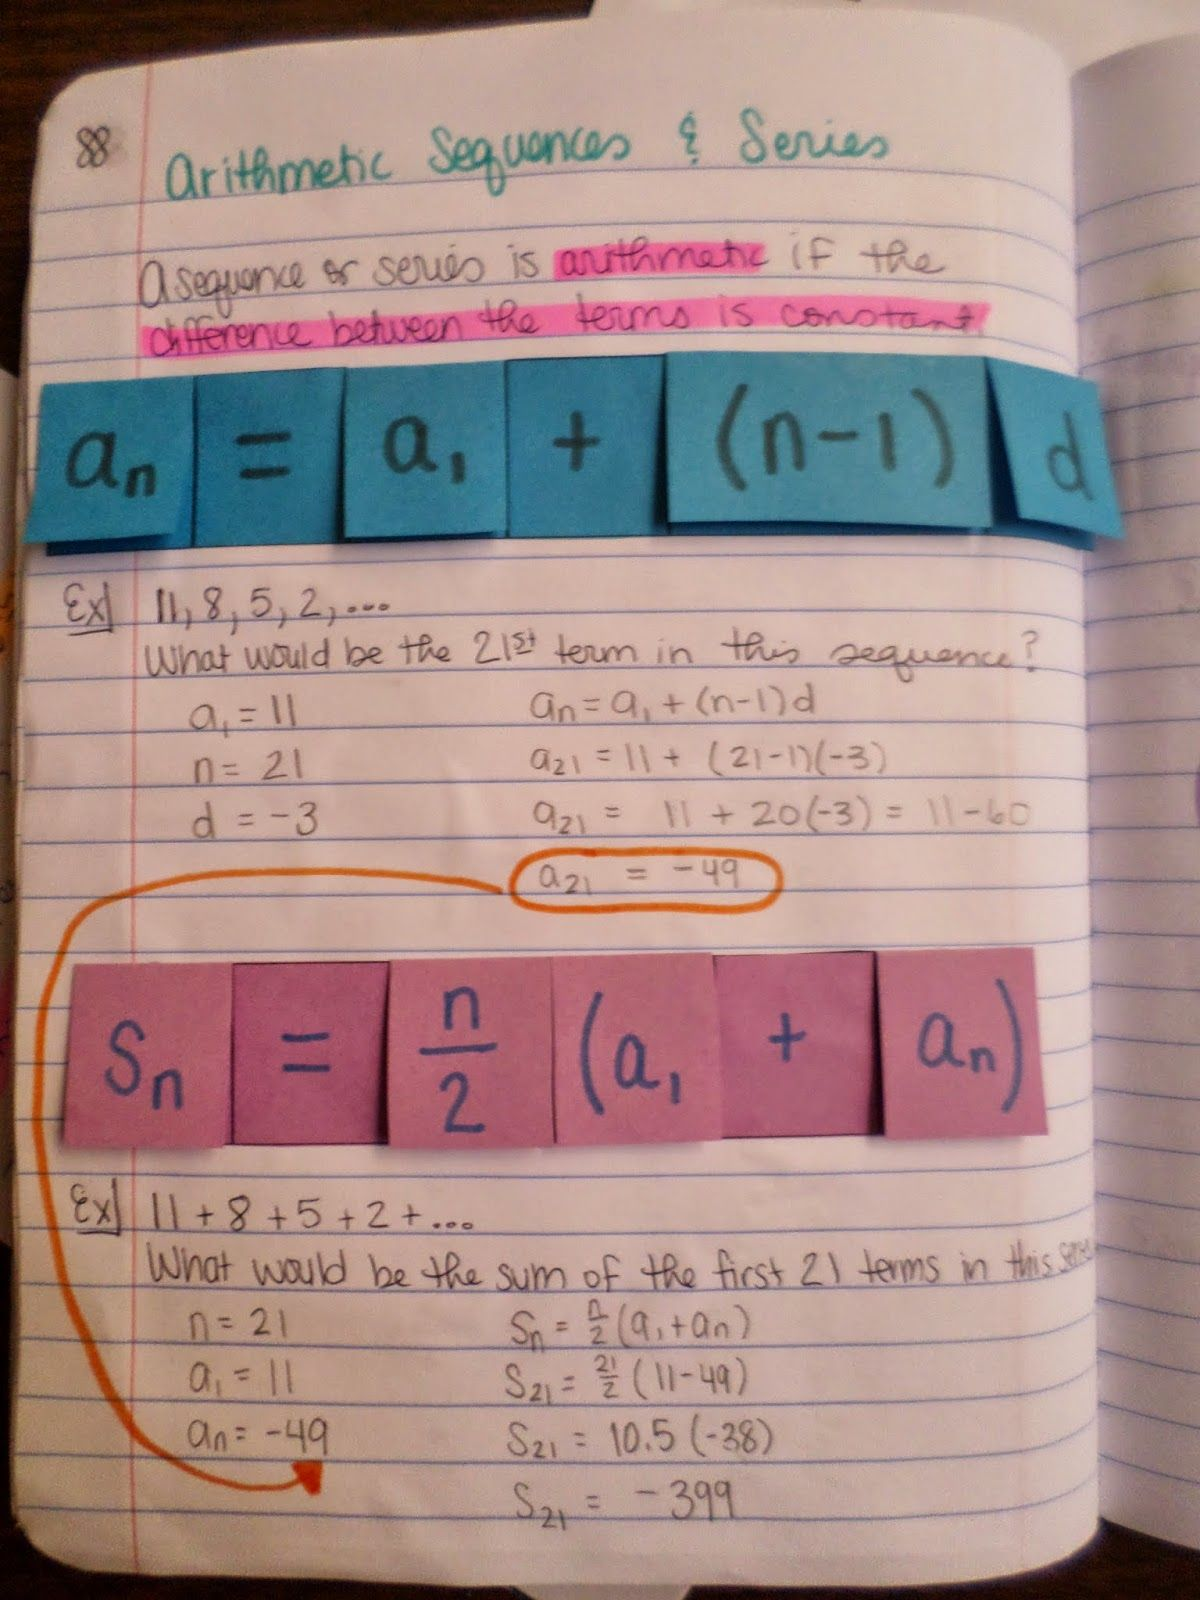 small resolution of 71 Arithmetic and geometric sequences ideas   geometric sequences